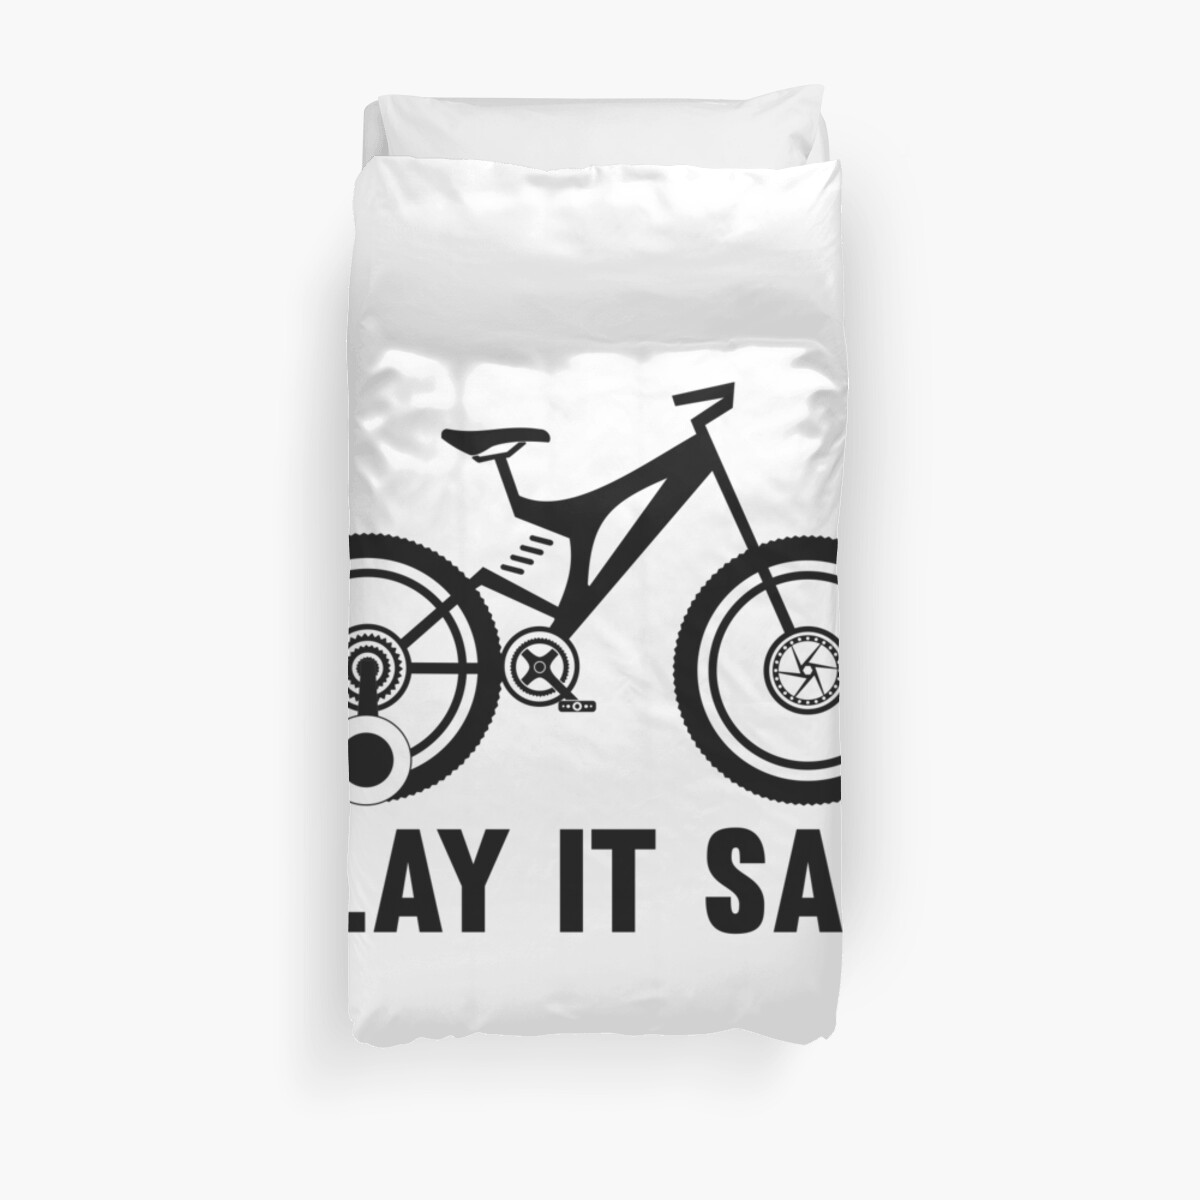 Play it safe funny player kids bike logo text design for friend brother sister an family duvet cover by sago design redbubble